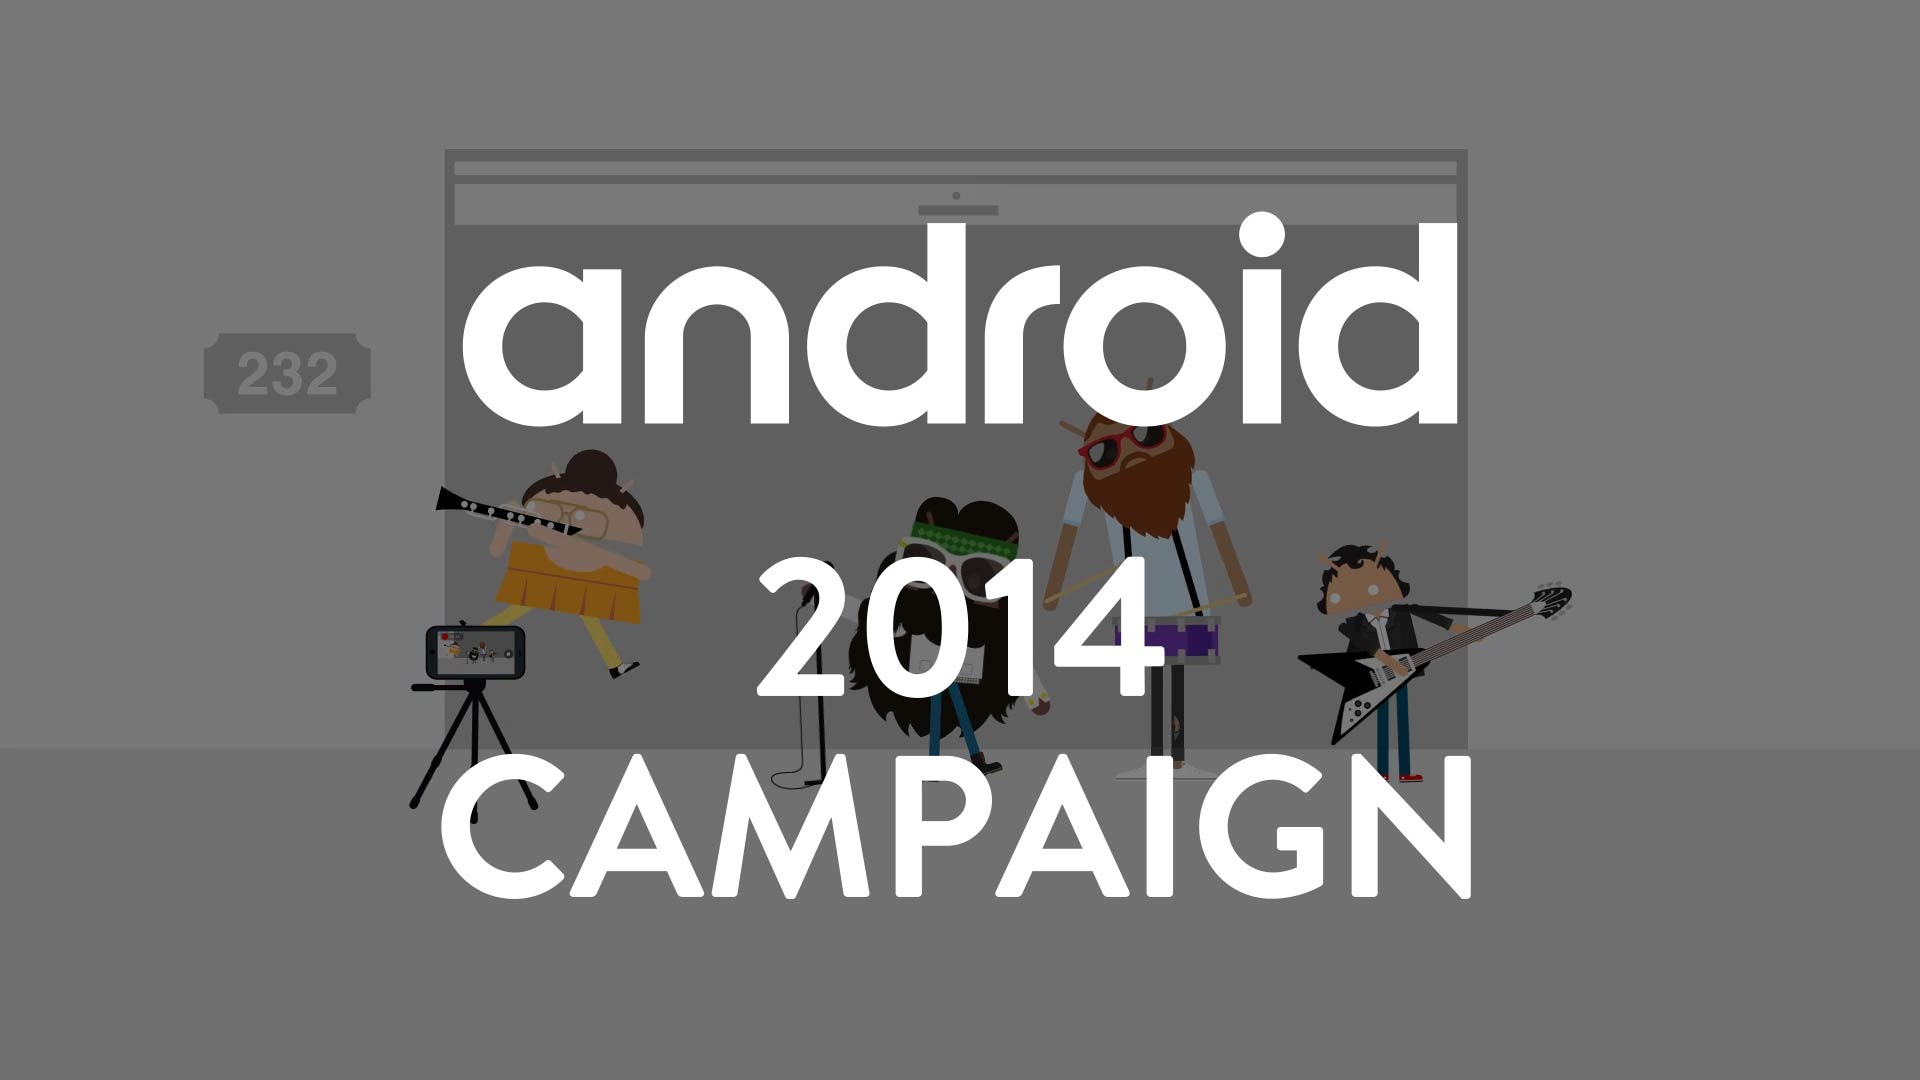 Android: Be Together. Not the Same (series)